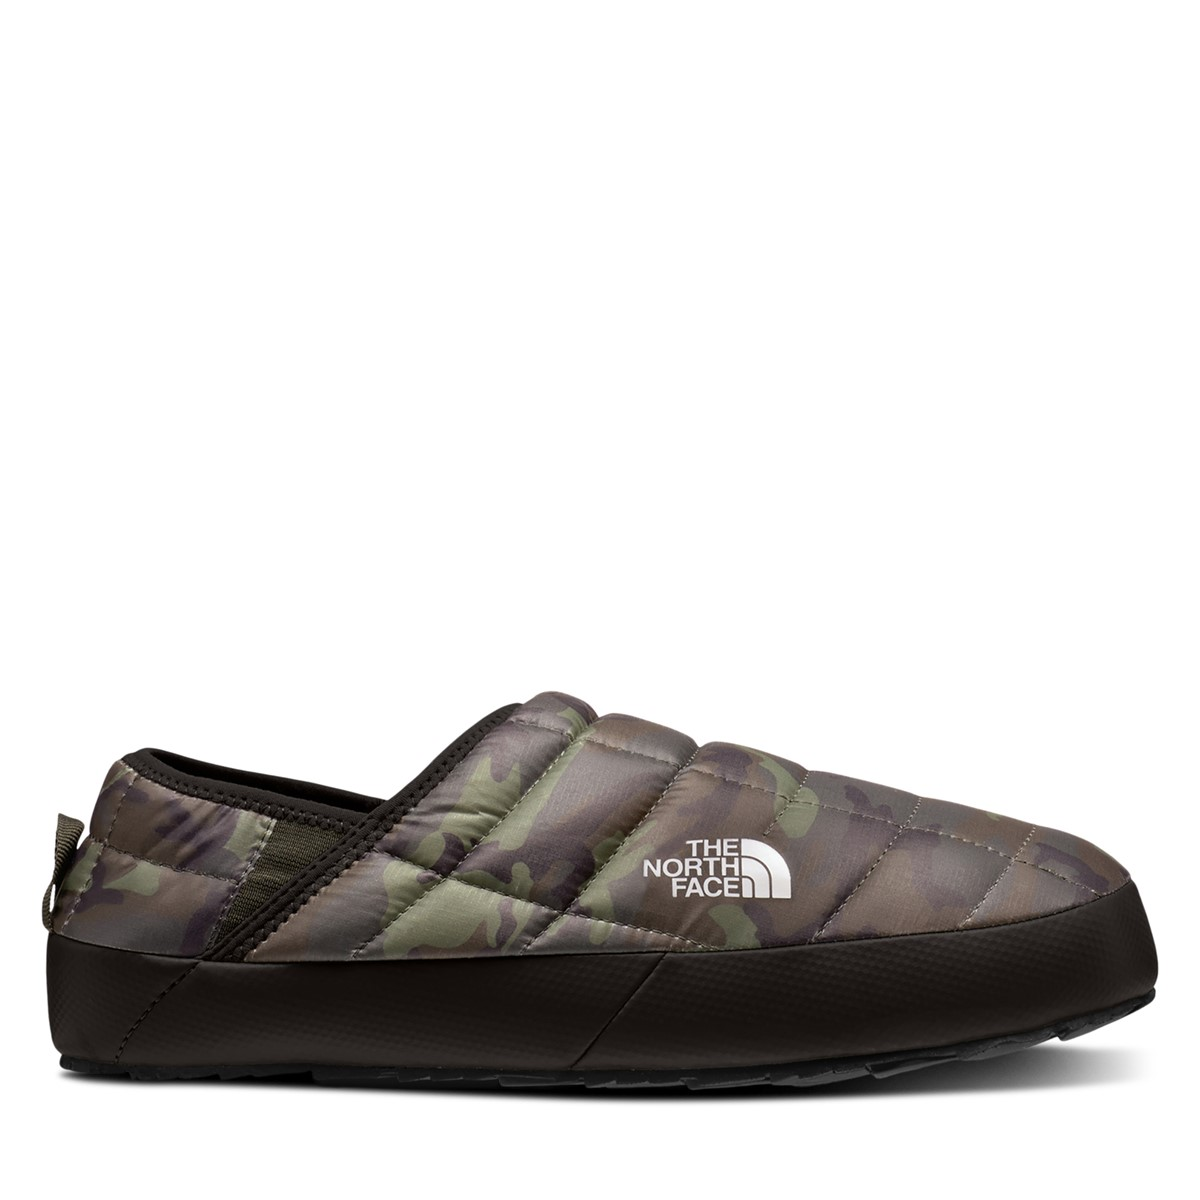 Men's Thermoball Mule Slippers in Camo Green